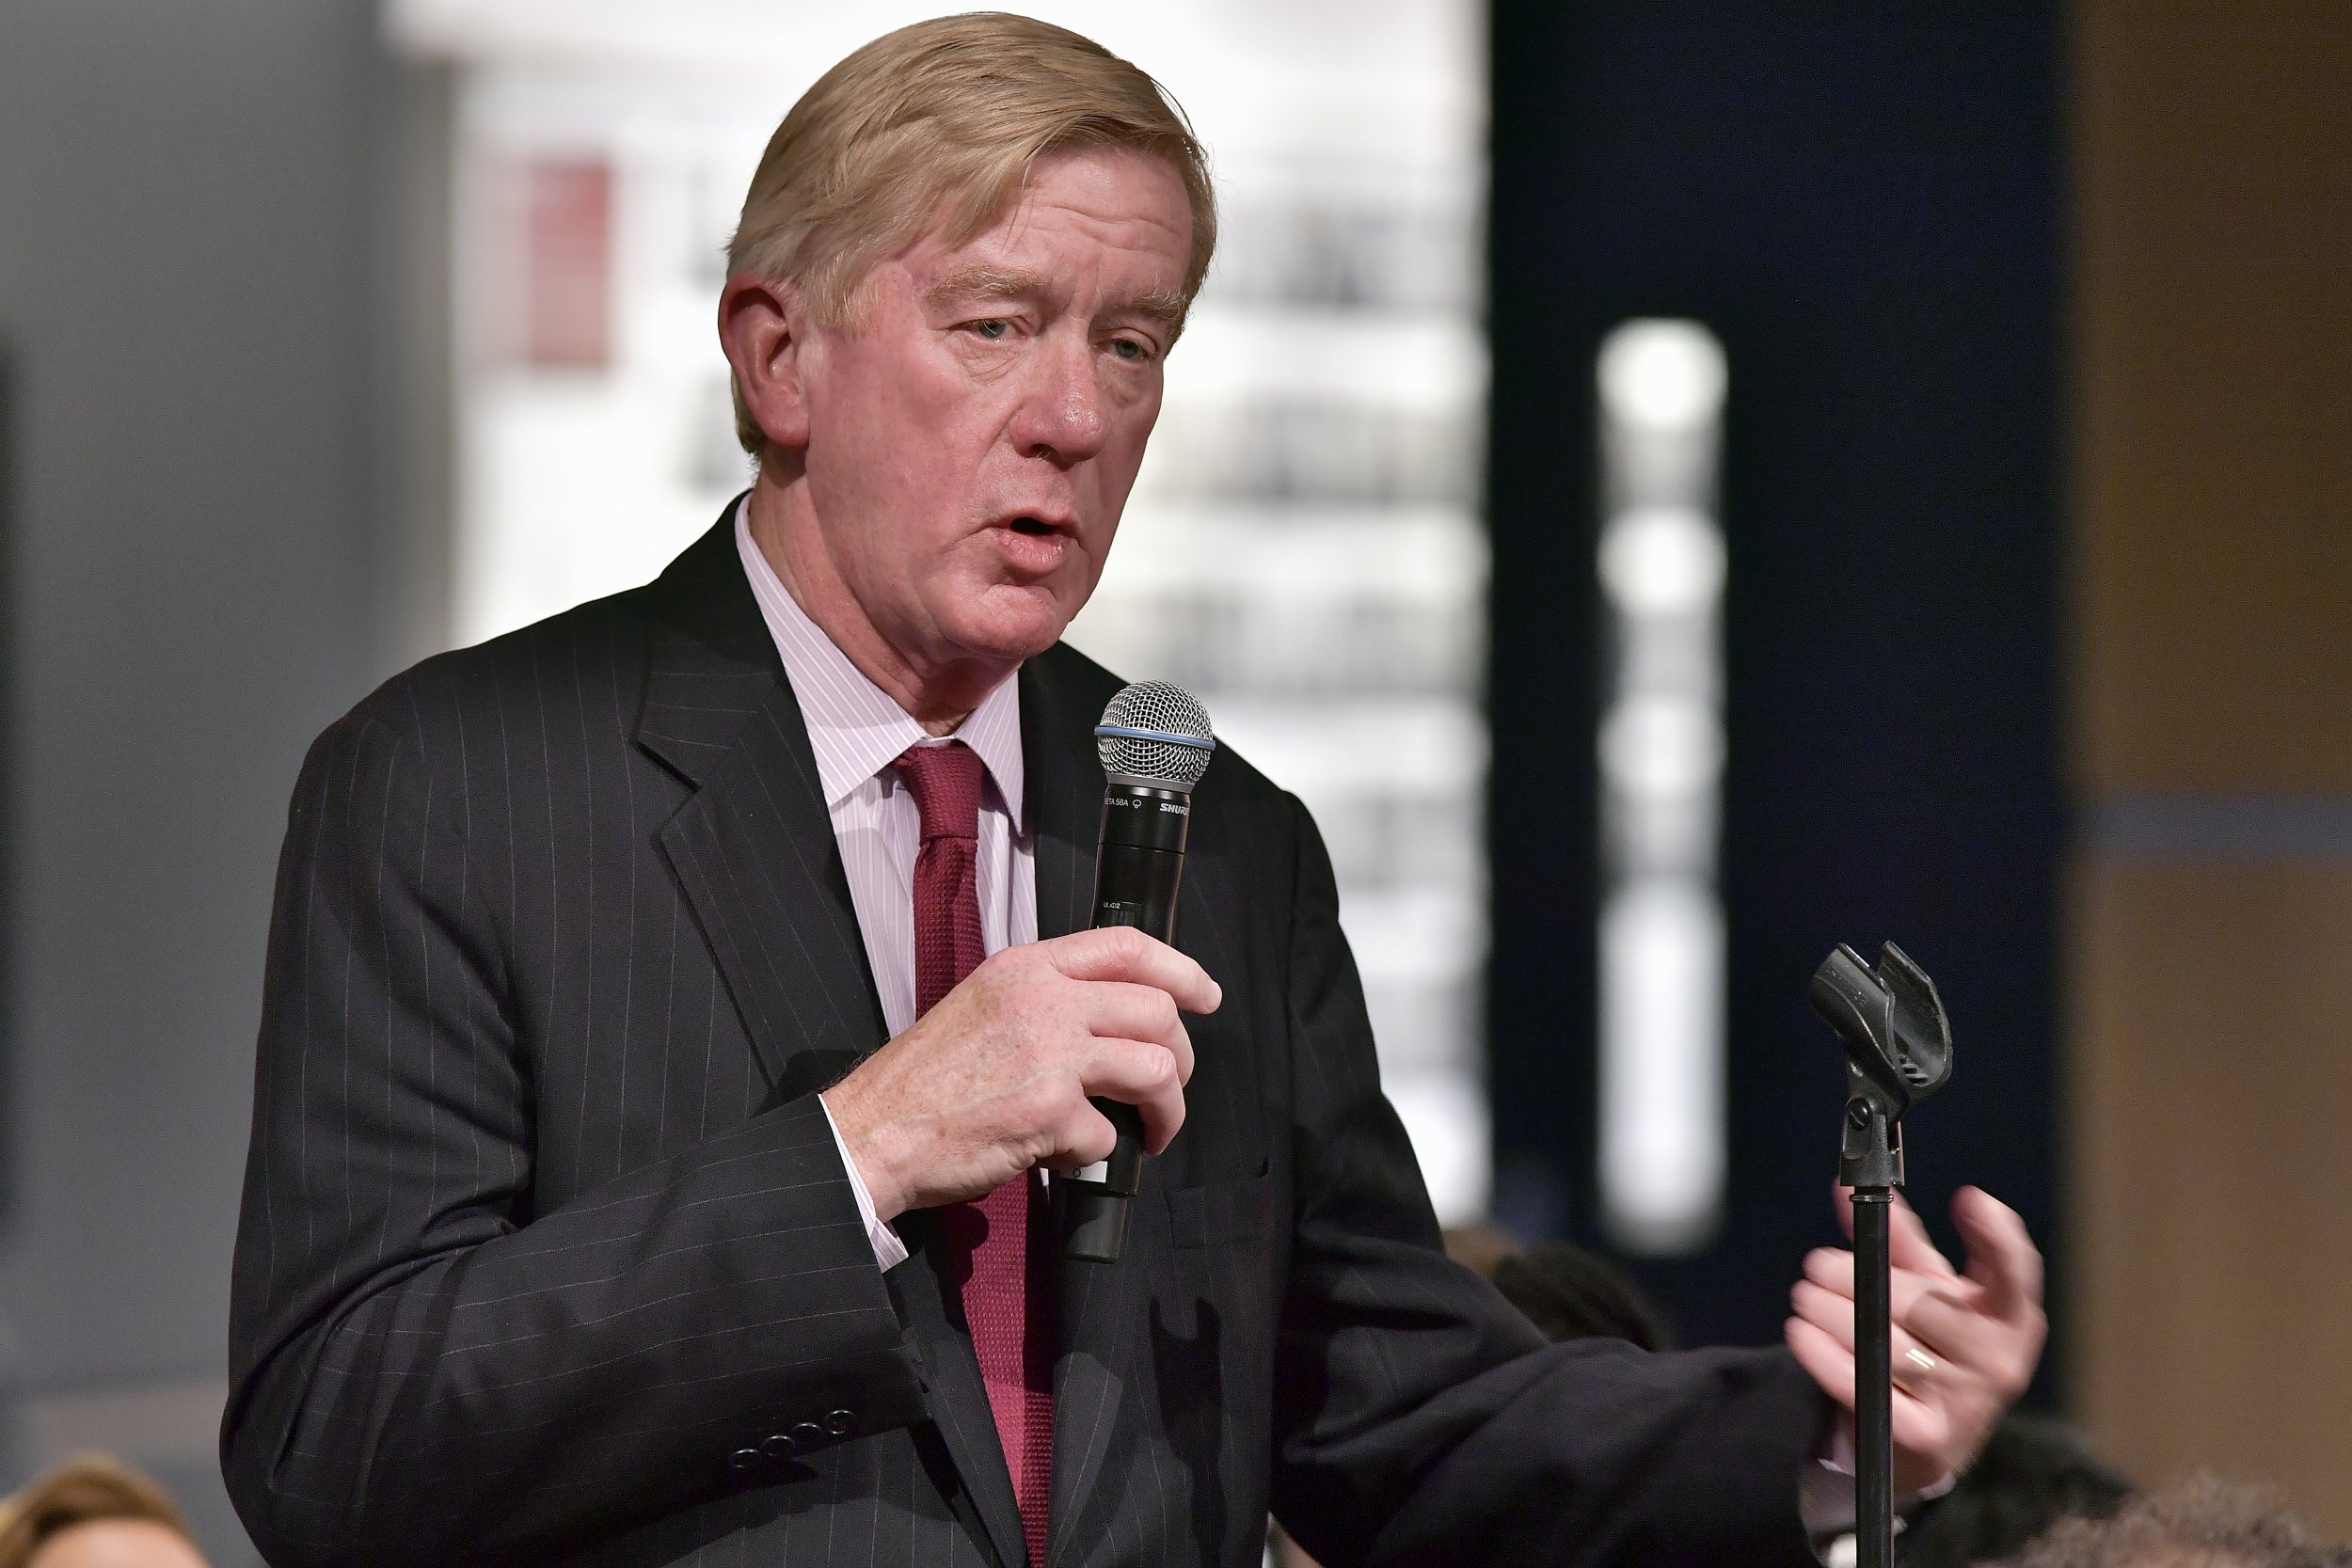 Bill Weld Calims Trump Wants an Aryan Nation